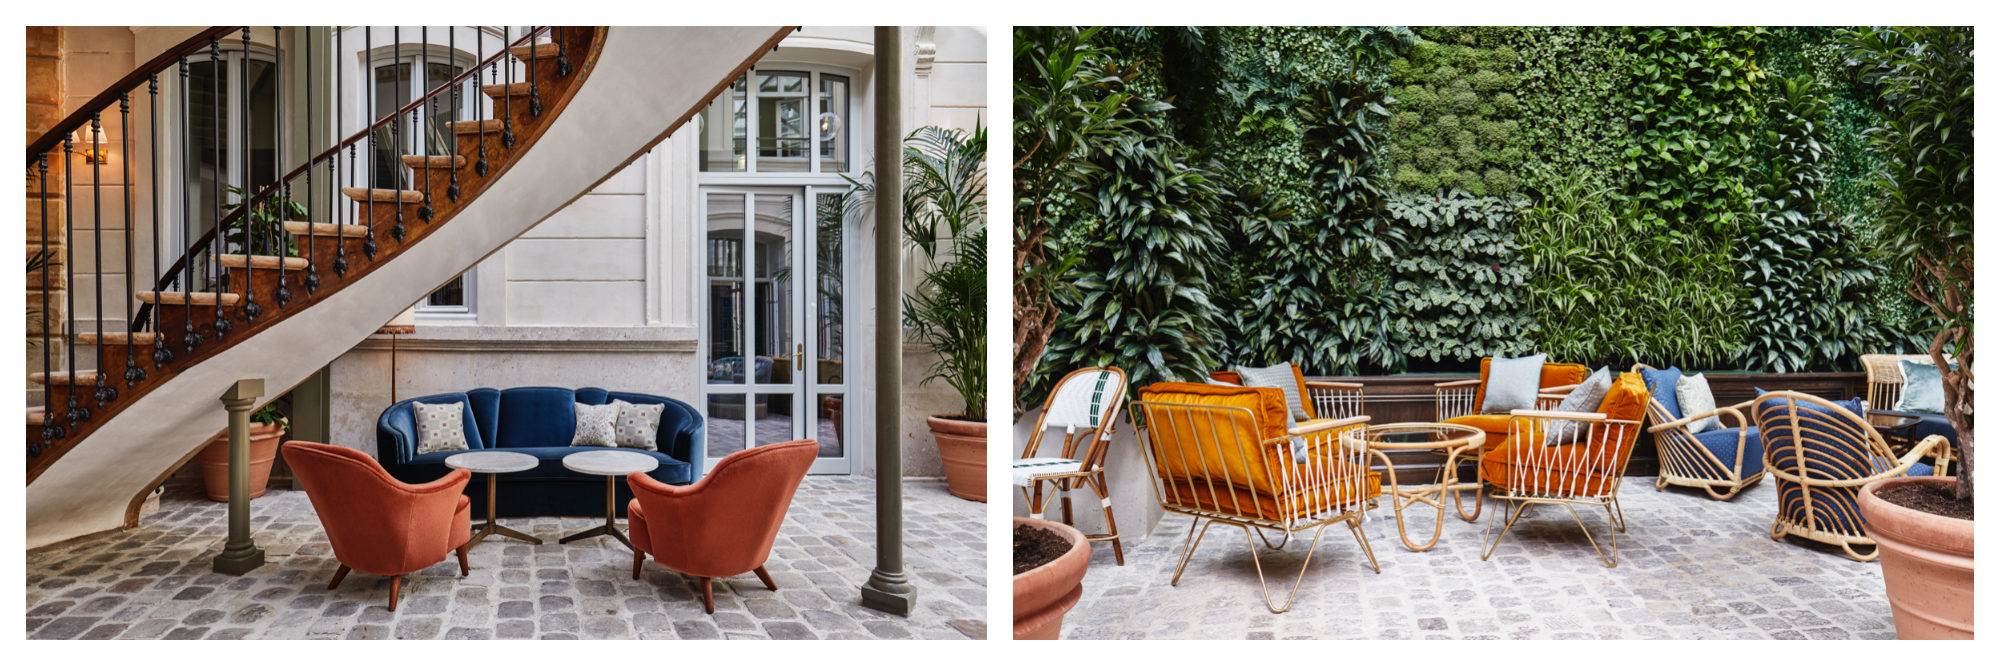 The iconic staircase at the Hoxton Paris Hotel (left) and the green wall at the hotel (right).